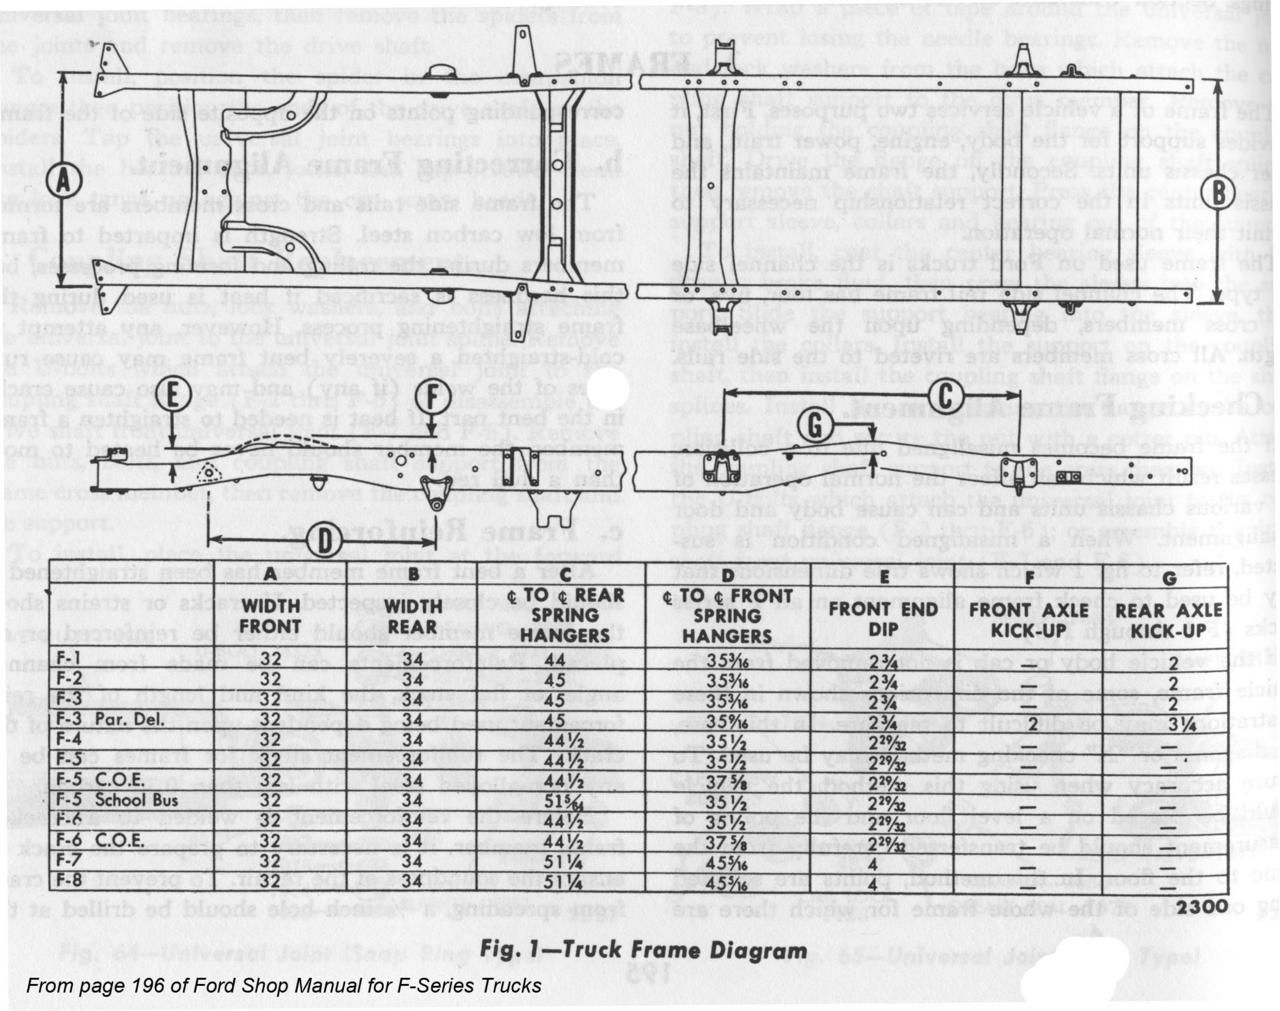 1940 Ford Truck Frame Dimensions   Amtframe org